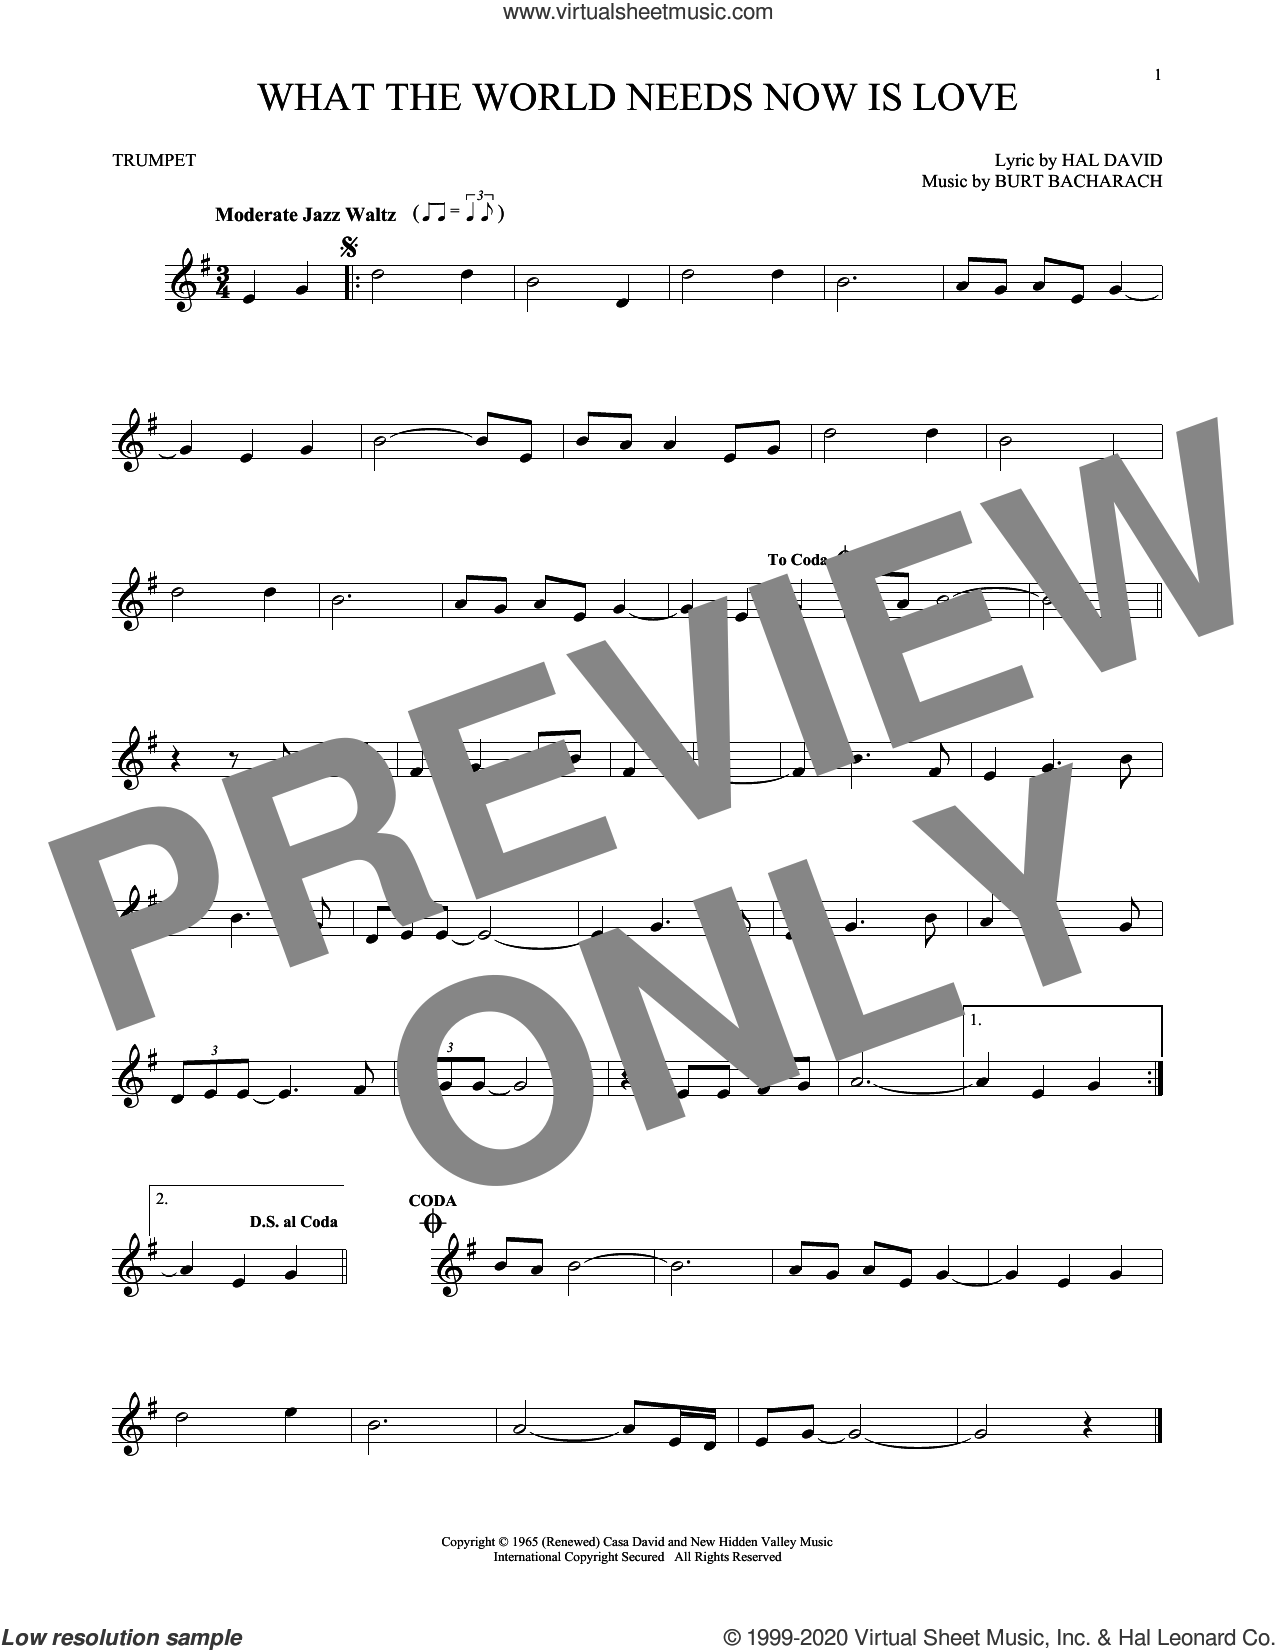 What The World Needs Now Is Love sheet music for trumpet solo by Bacharach & David, Jackie DeShannon, Burt Bacharach and Hal David, intermediate skill level